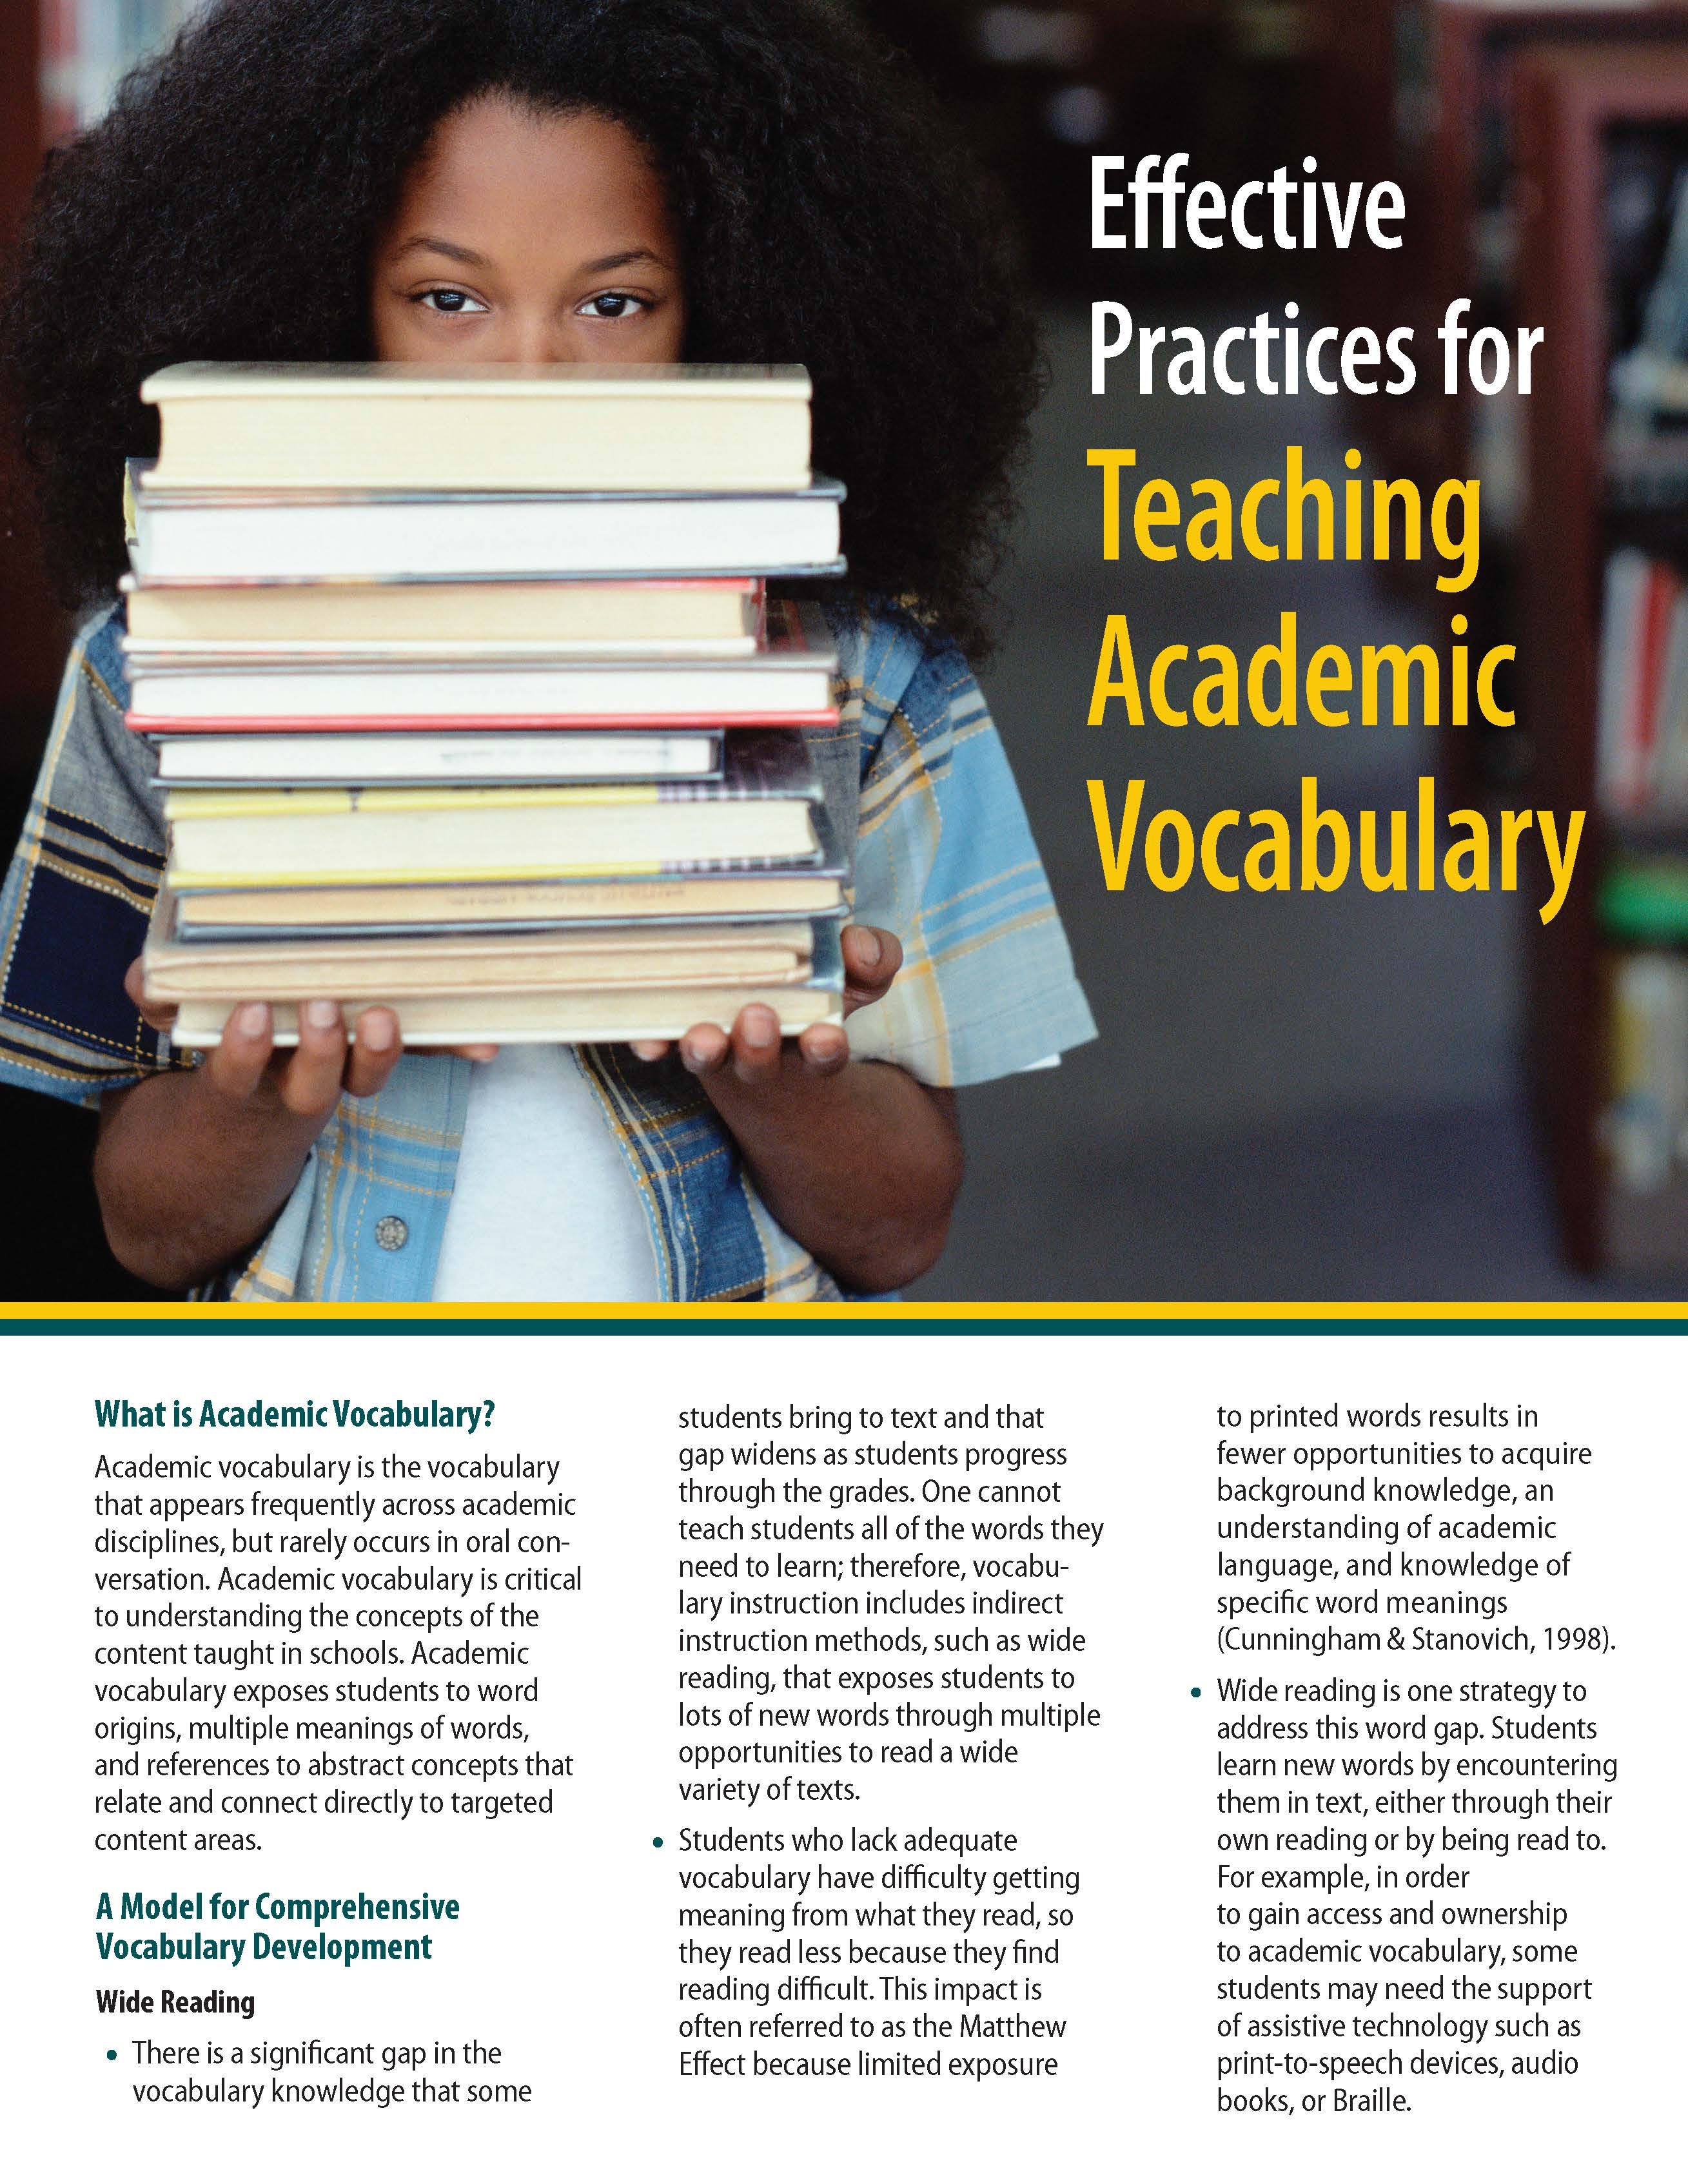 Effective Practices for Teaching Academic Vocabulary